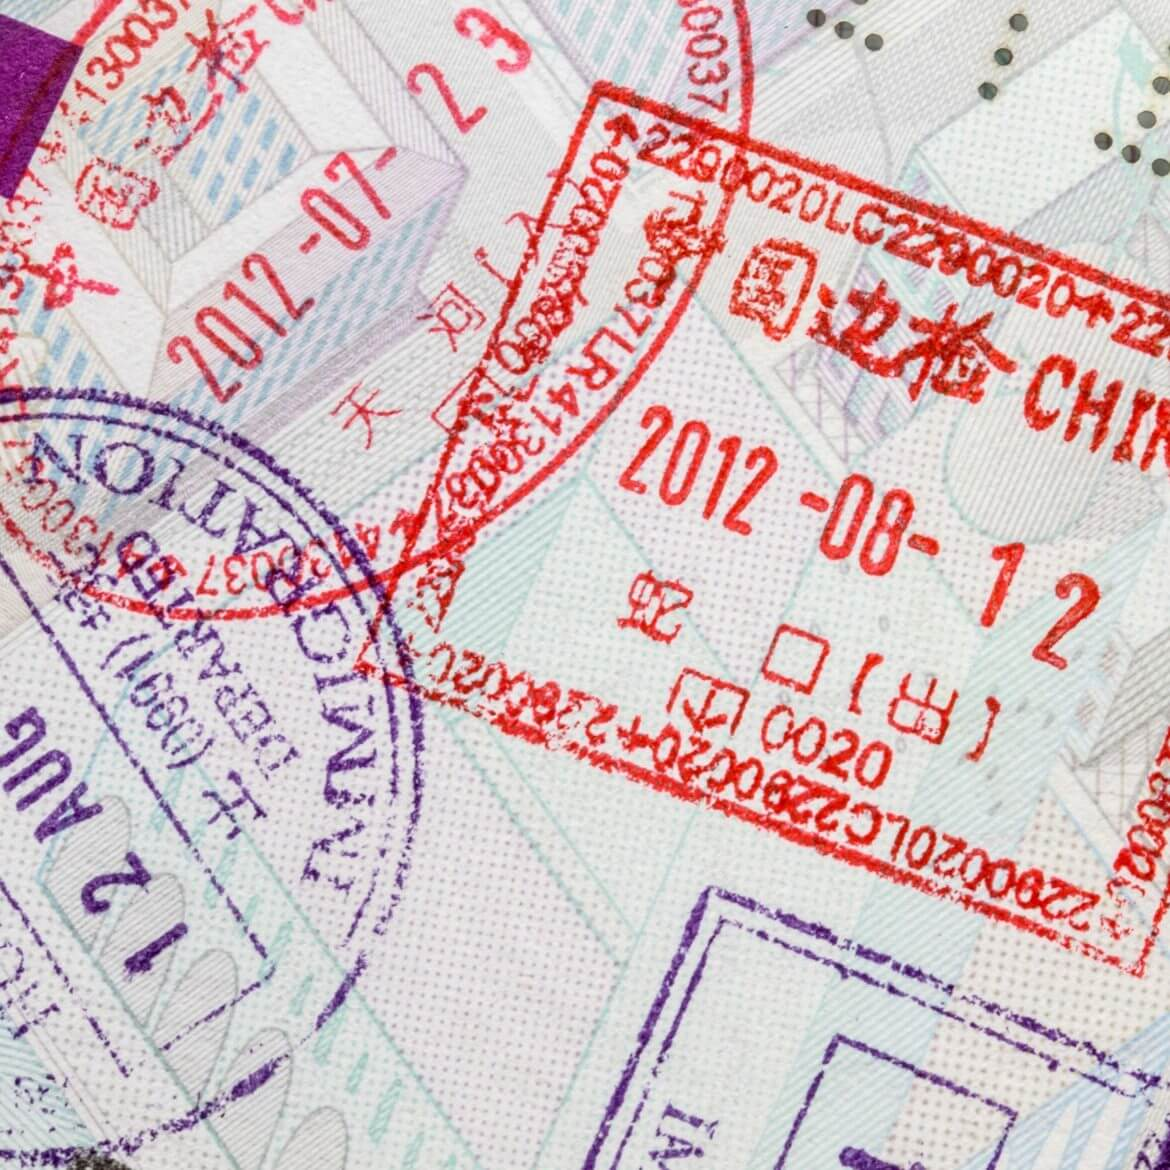 travel documents stamped